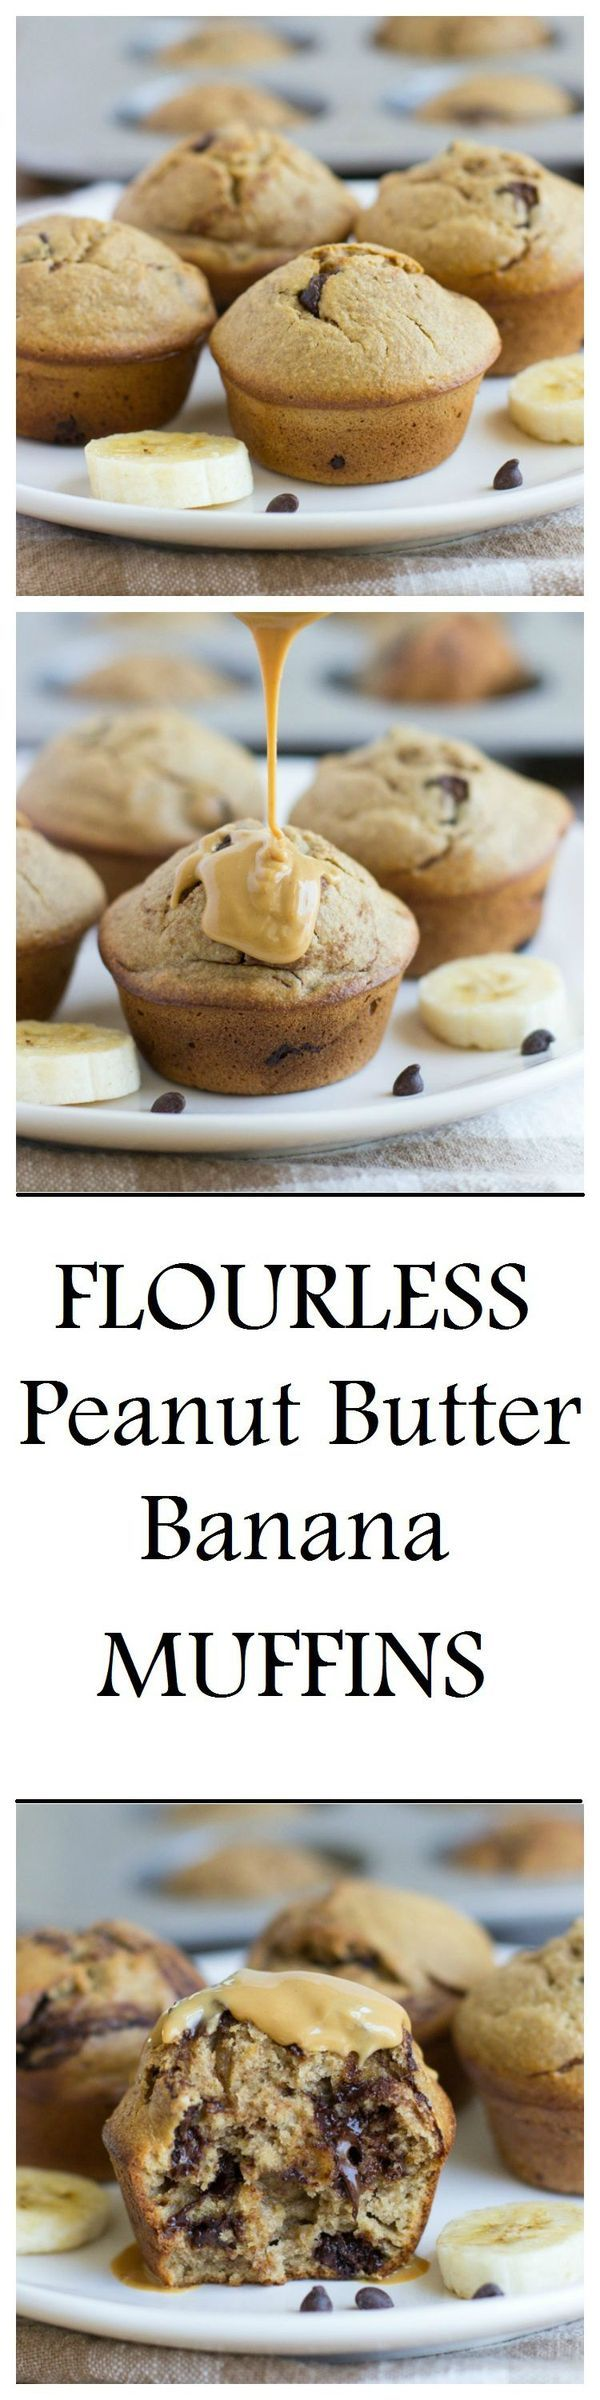 Flourless peanut butter banana muffins are so moist and delicious, you would never guess that they're healthy! Gluten-free, dairy-free and oil-free!